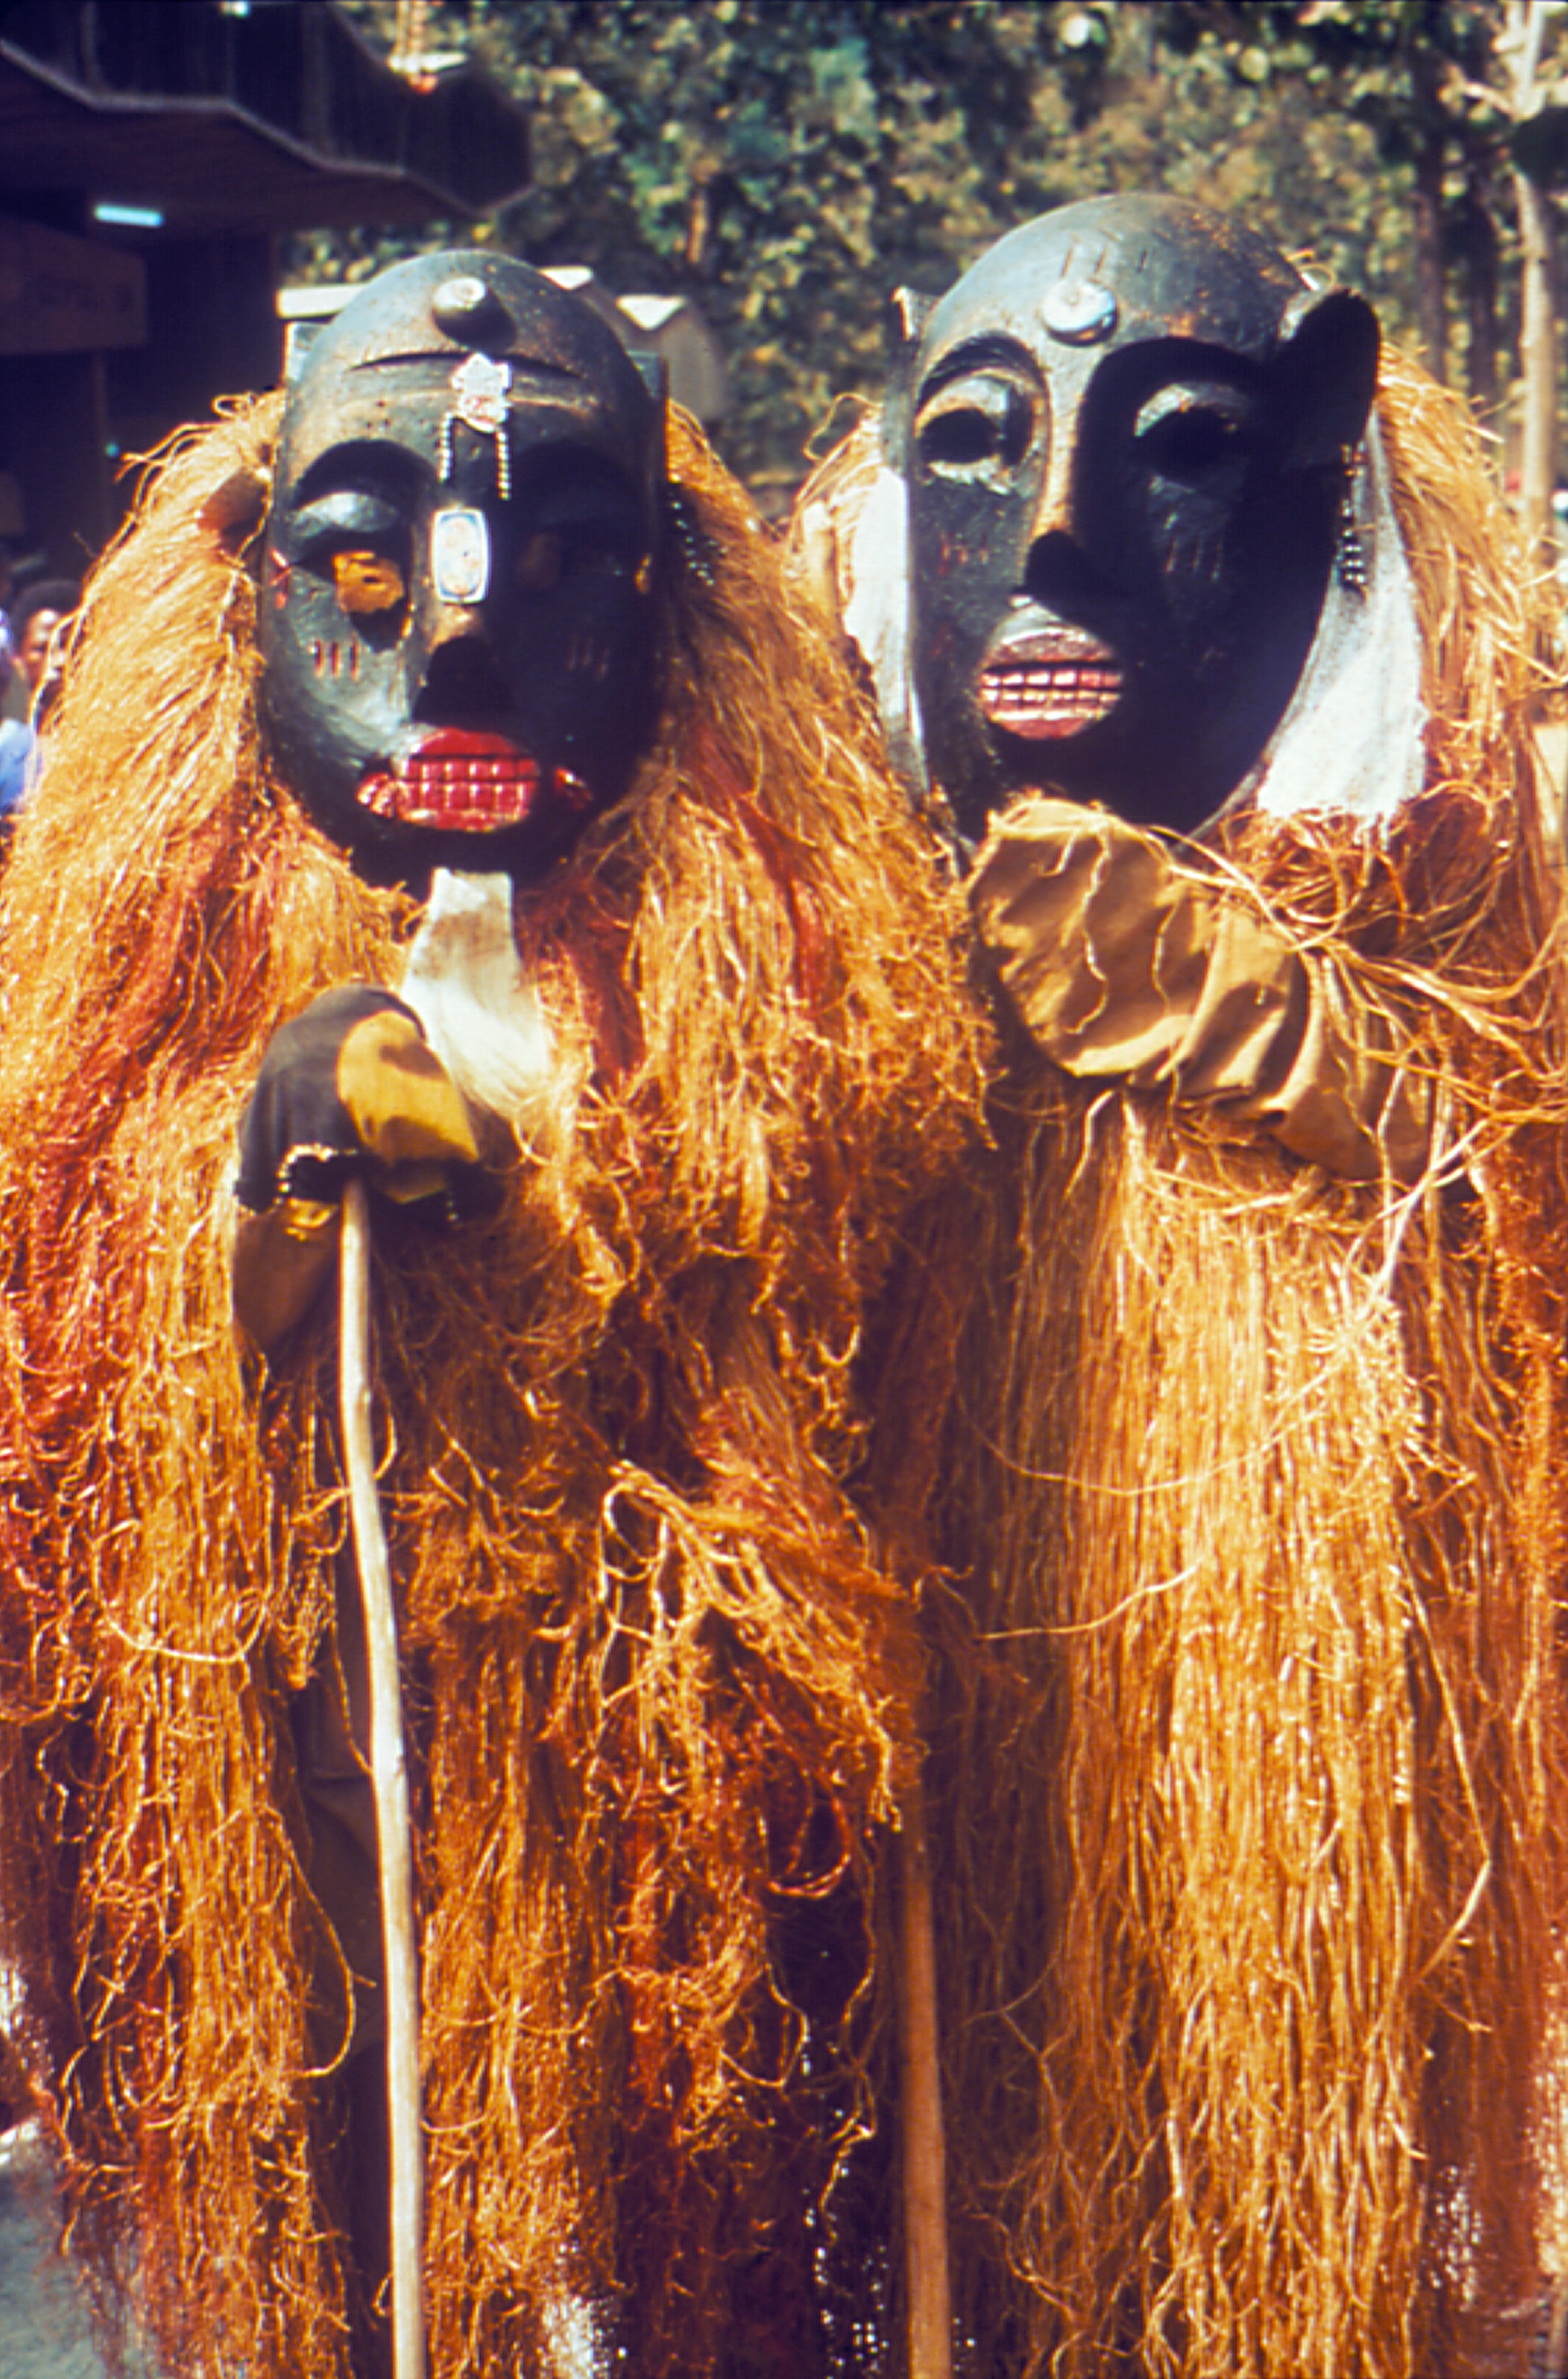 Witch doctor - Wikipedia